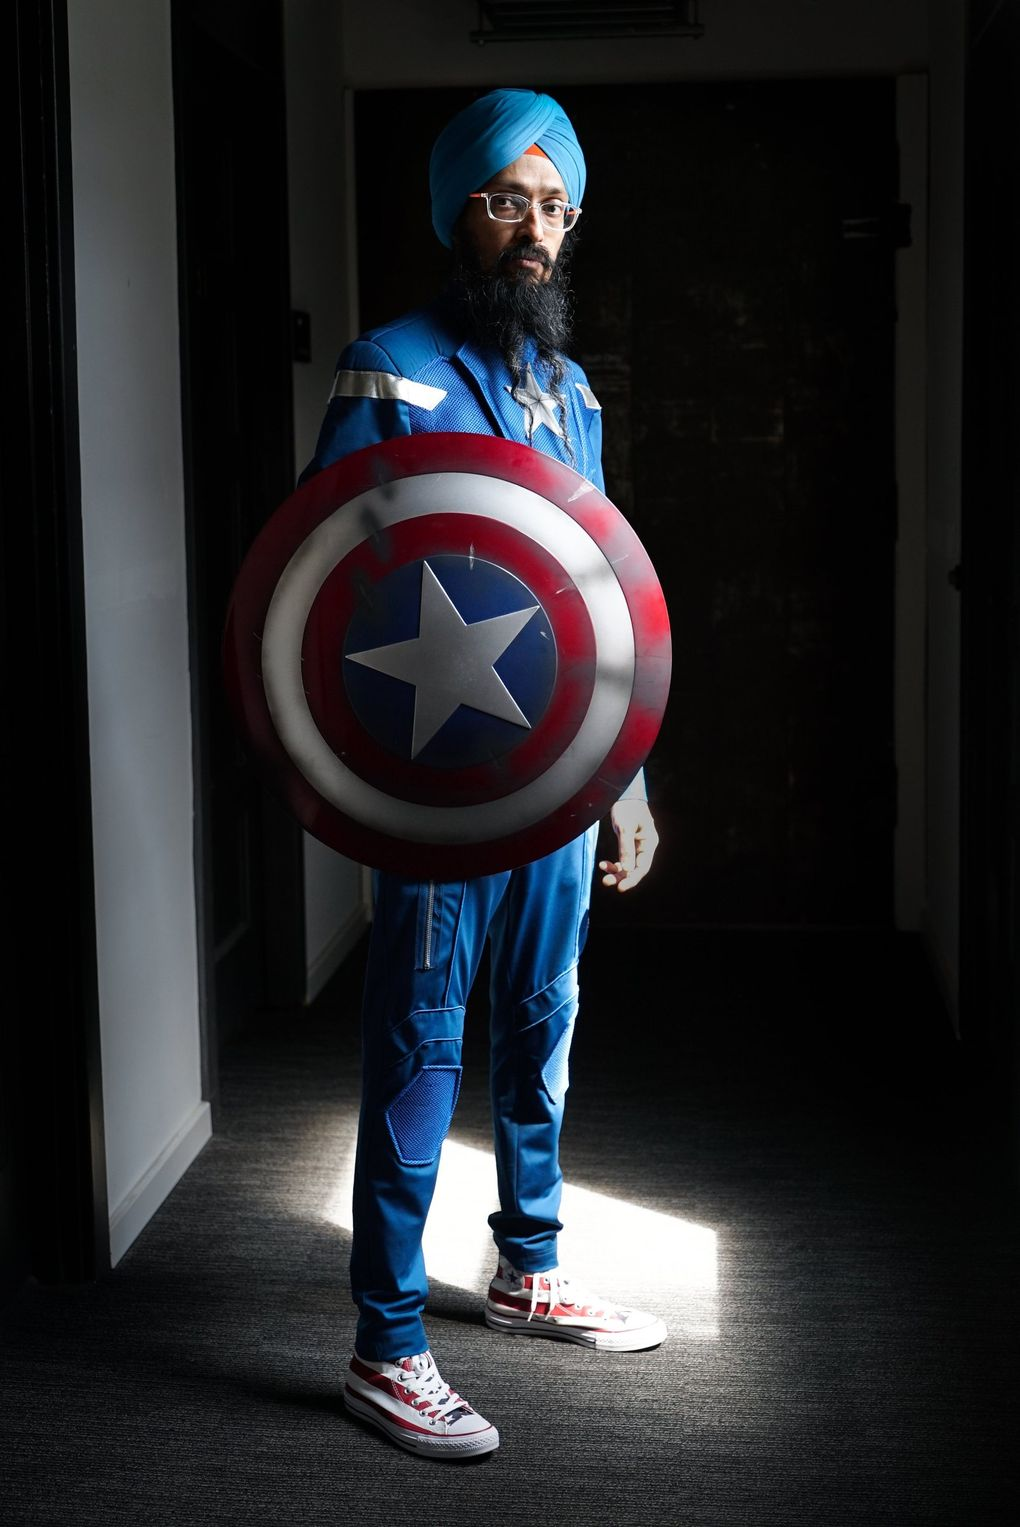 Vishavjit Singh, dressed as Sikh Captain America, uses his superhero alter ego to initiate conversations he would not normally have with others while wearing his civilian clothes. (Corinne Chin / The Seattle Times)